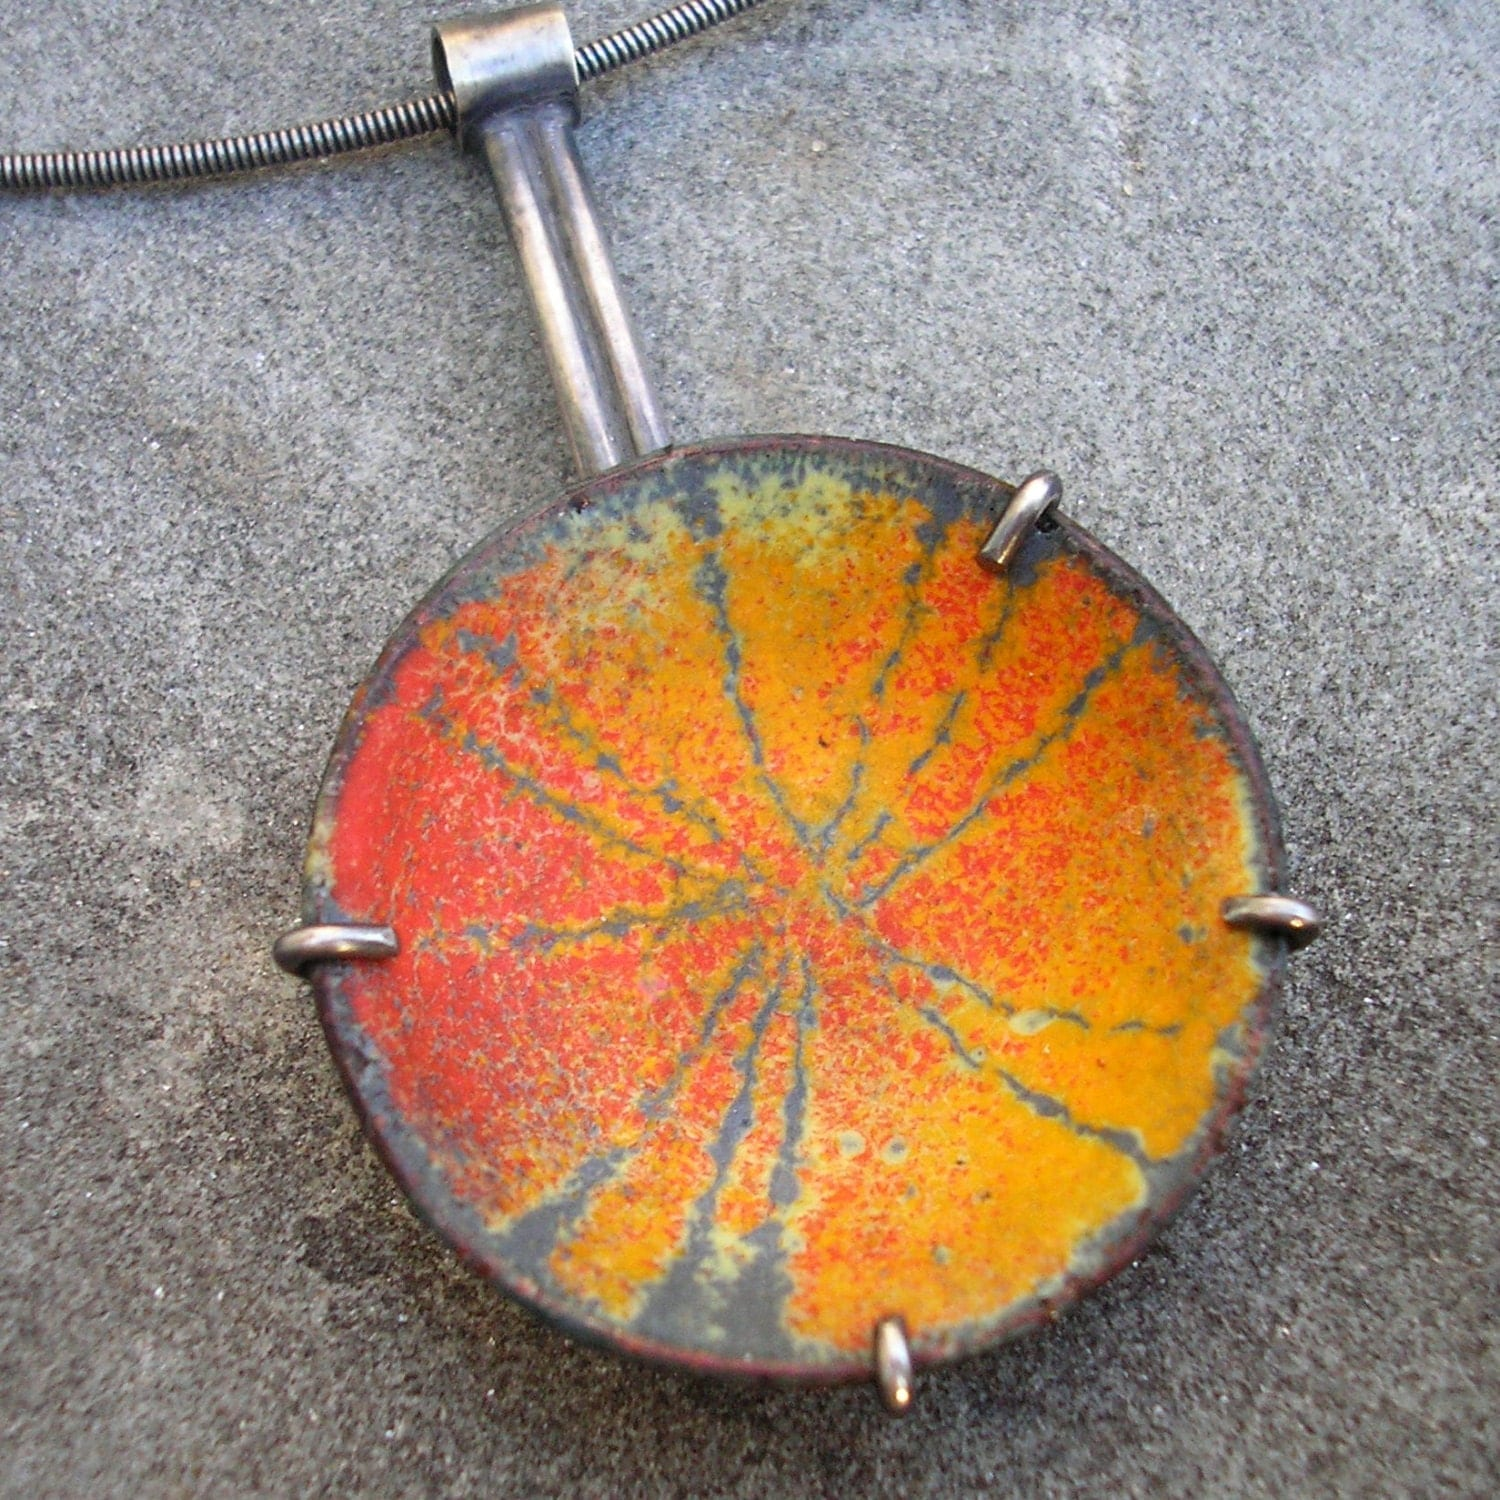 Enamel and Sterling Silver Pendant - Sgraffito Orange, Red, Chartreuse, Charcoal Grey Enamel Necklace - Enamel Sterling Silver Jewelry - lsueszabo